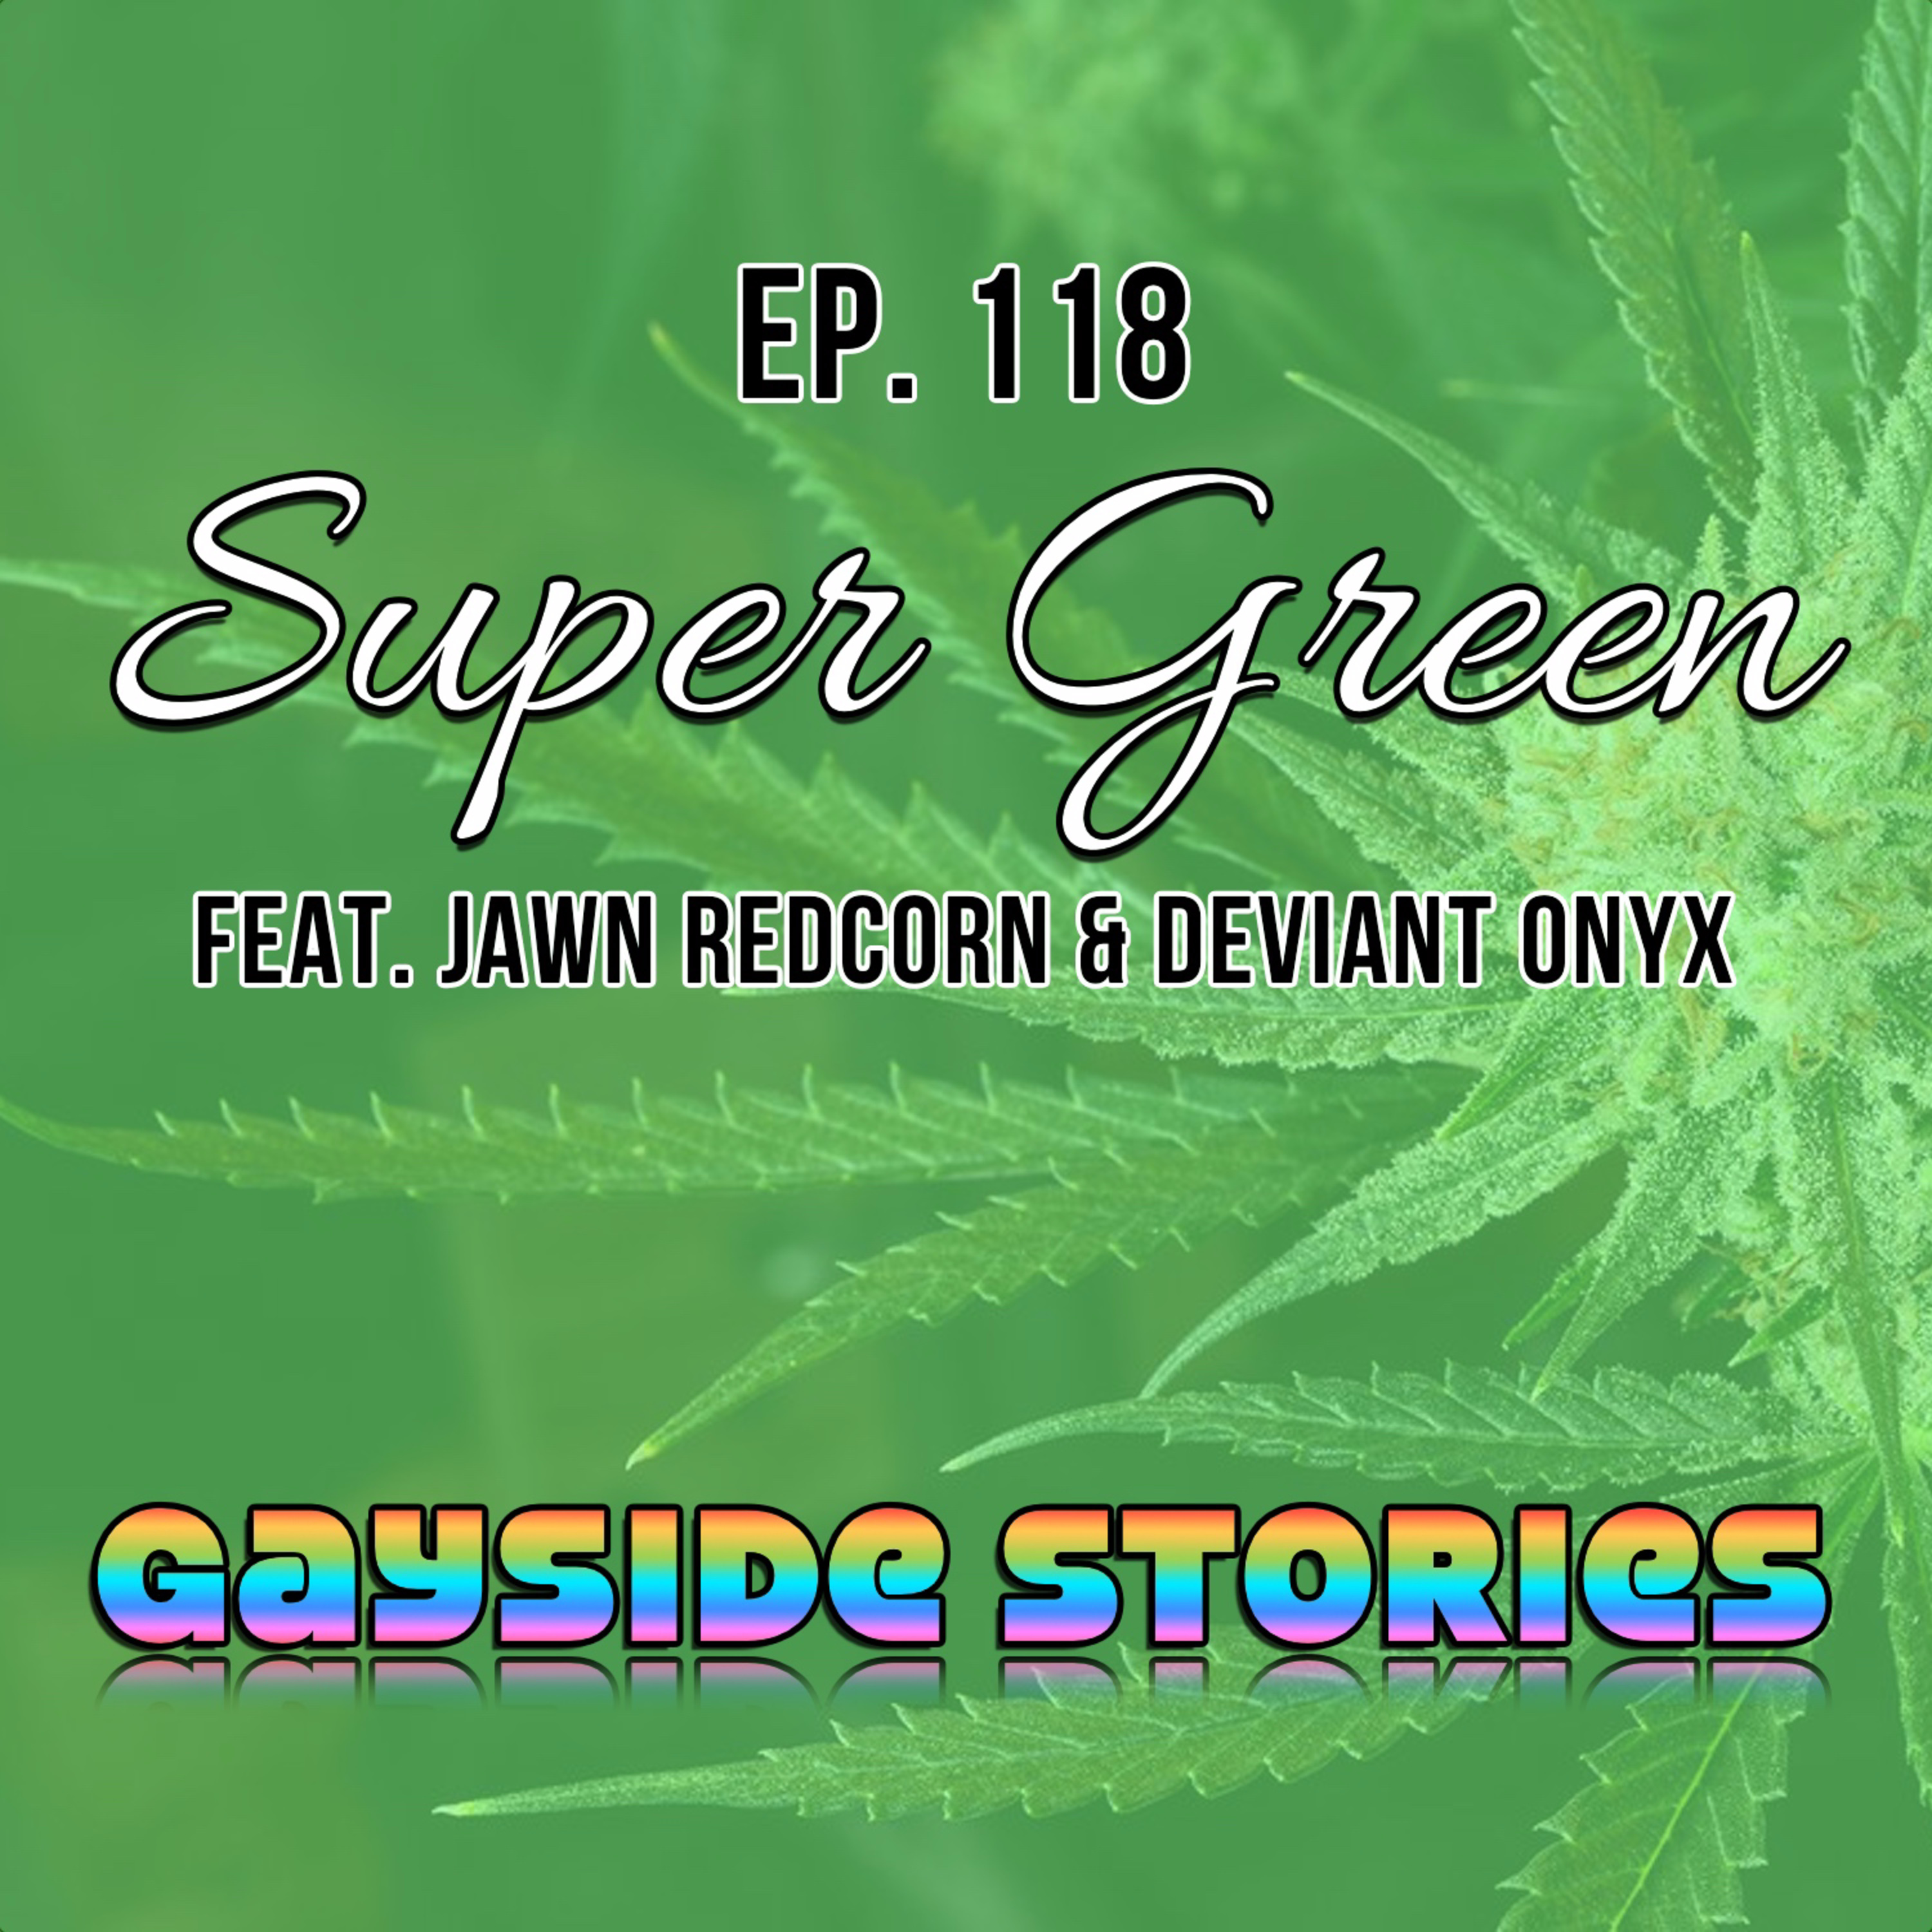 Ep. 118 - Super Green (feat. Jawn Redcorn & Deviant Onyx)